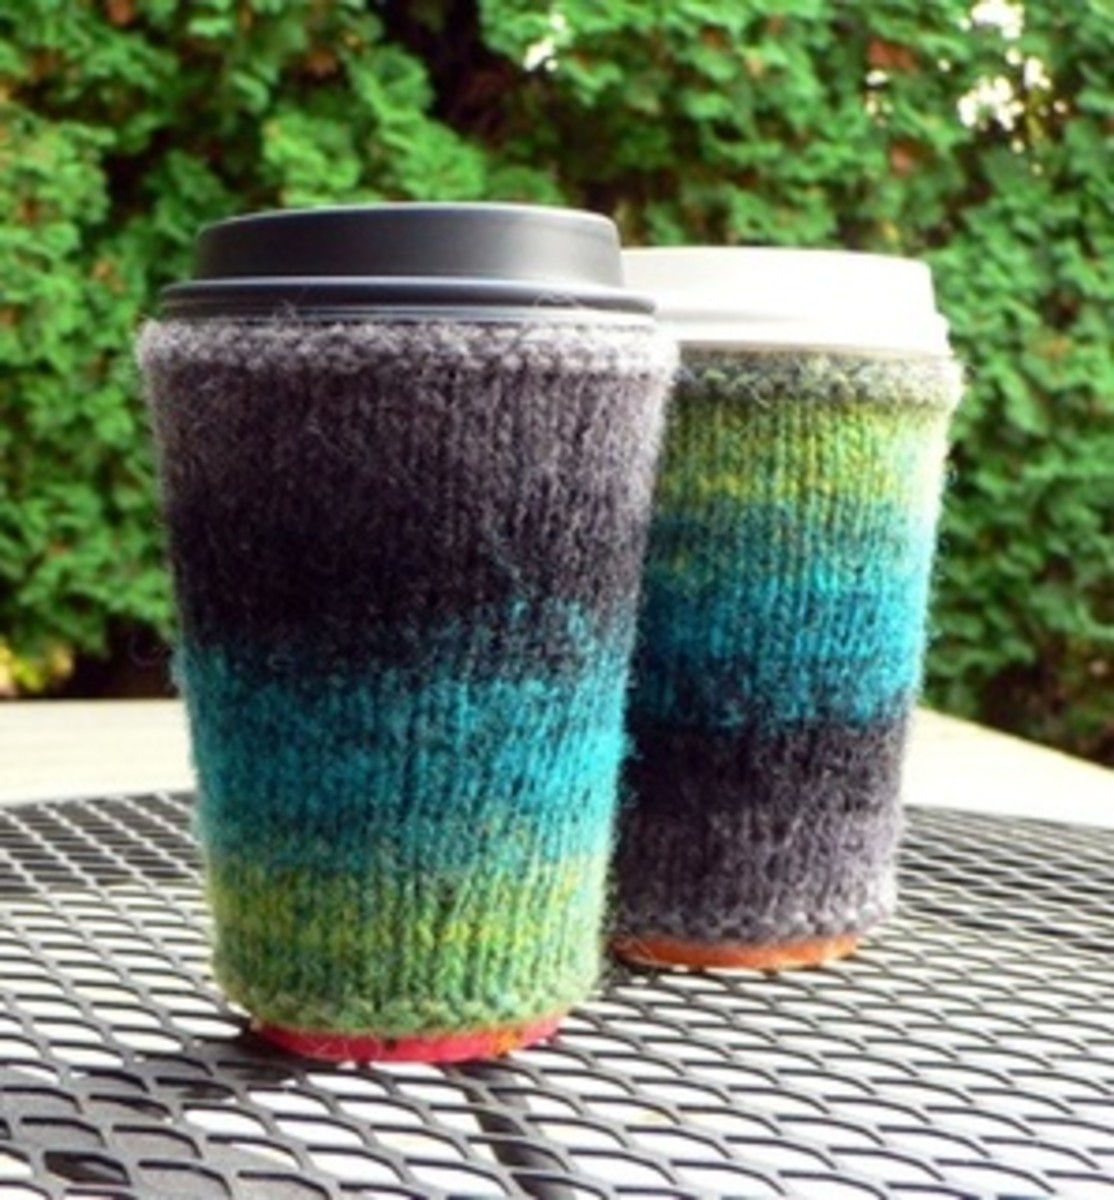 Free Patterns For Crochet and Knitting